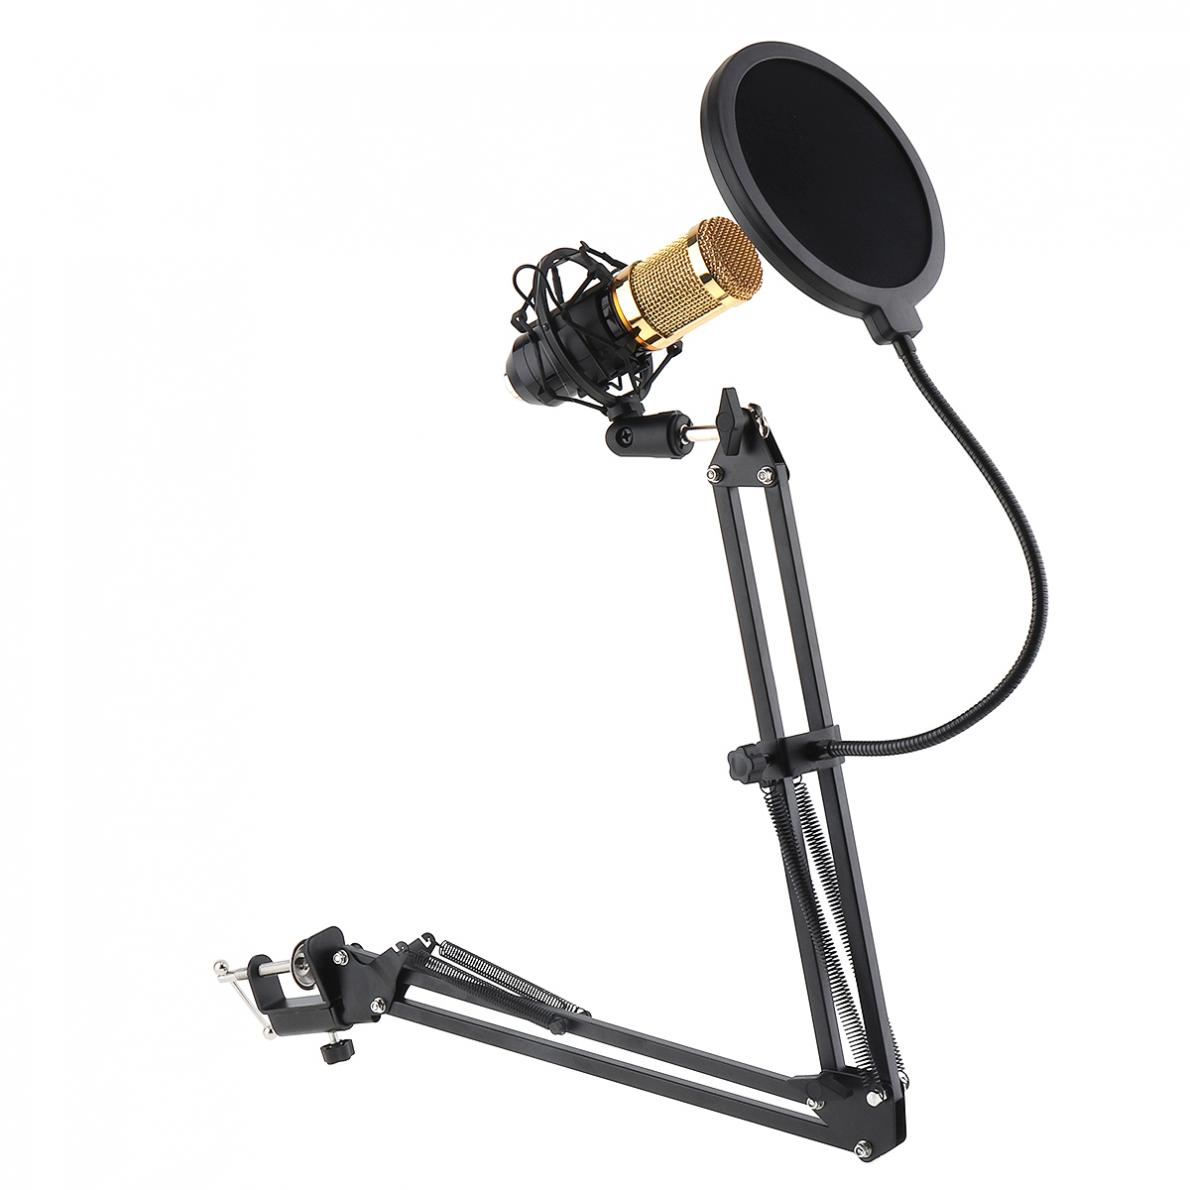 Black NB-35 Microphone Scissor Arm Stand Mic Clip Holder With Desktop Alloy Base Clampfor KTV Studio